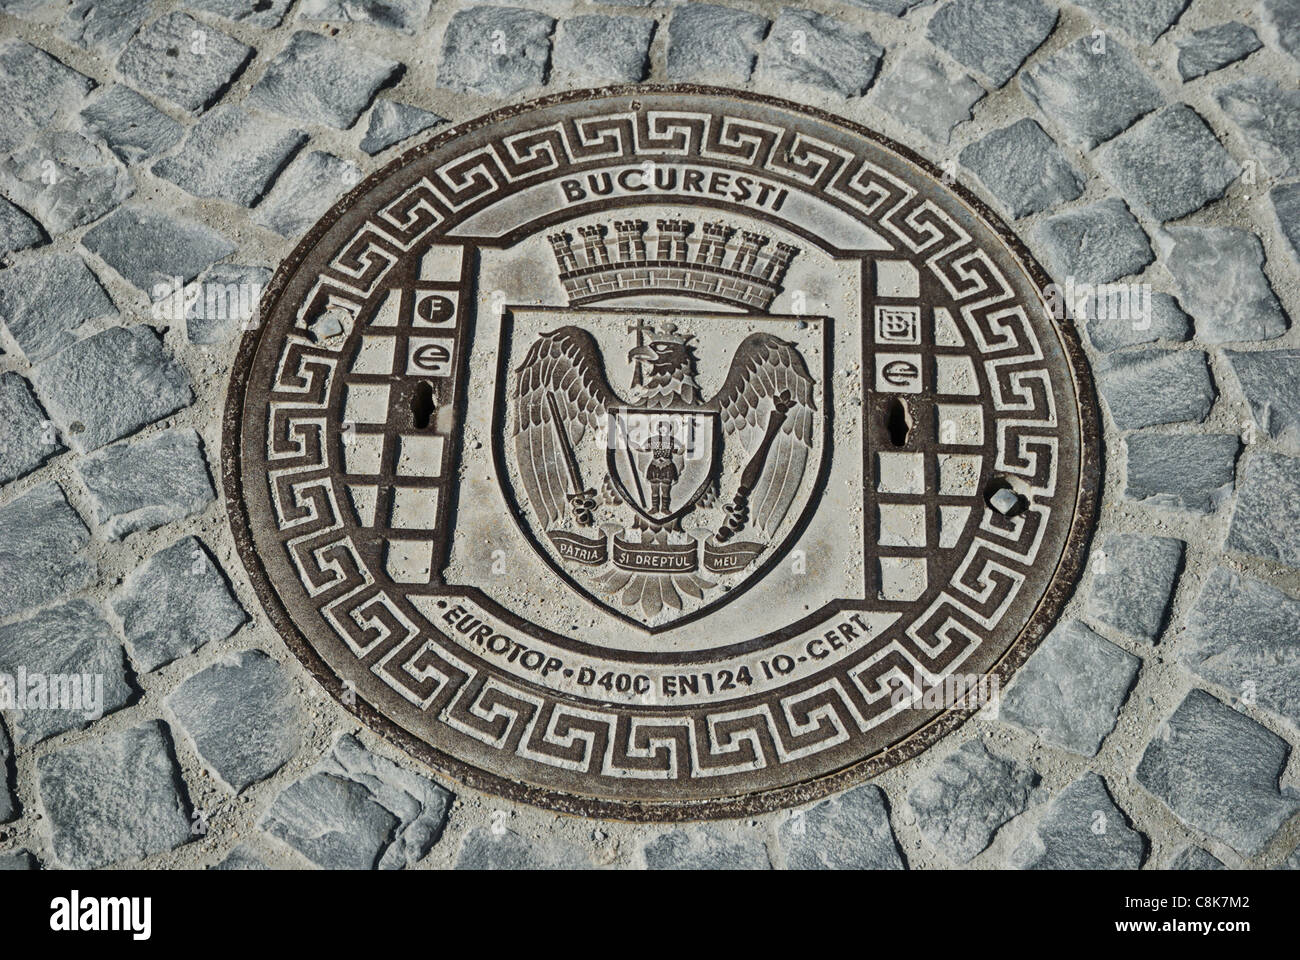 manhole cover in Bucharest, Romania - Stock Image